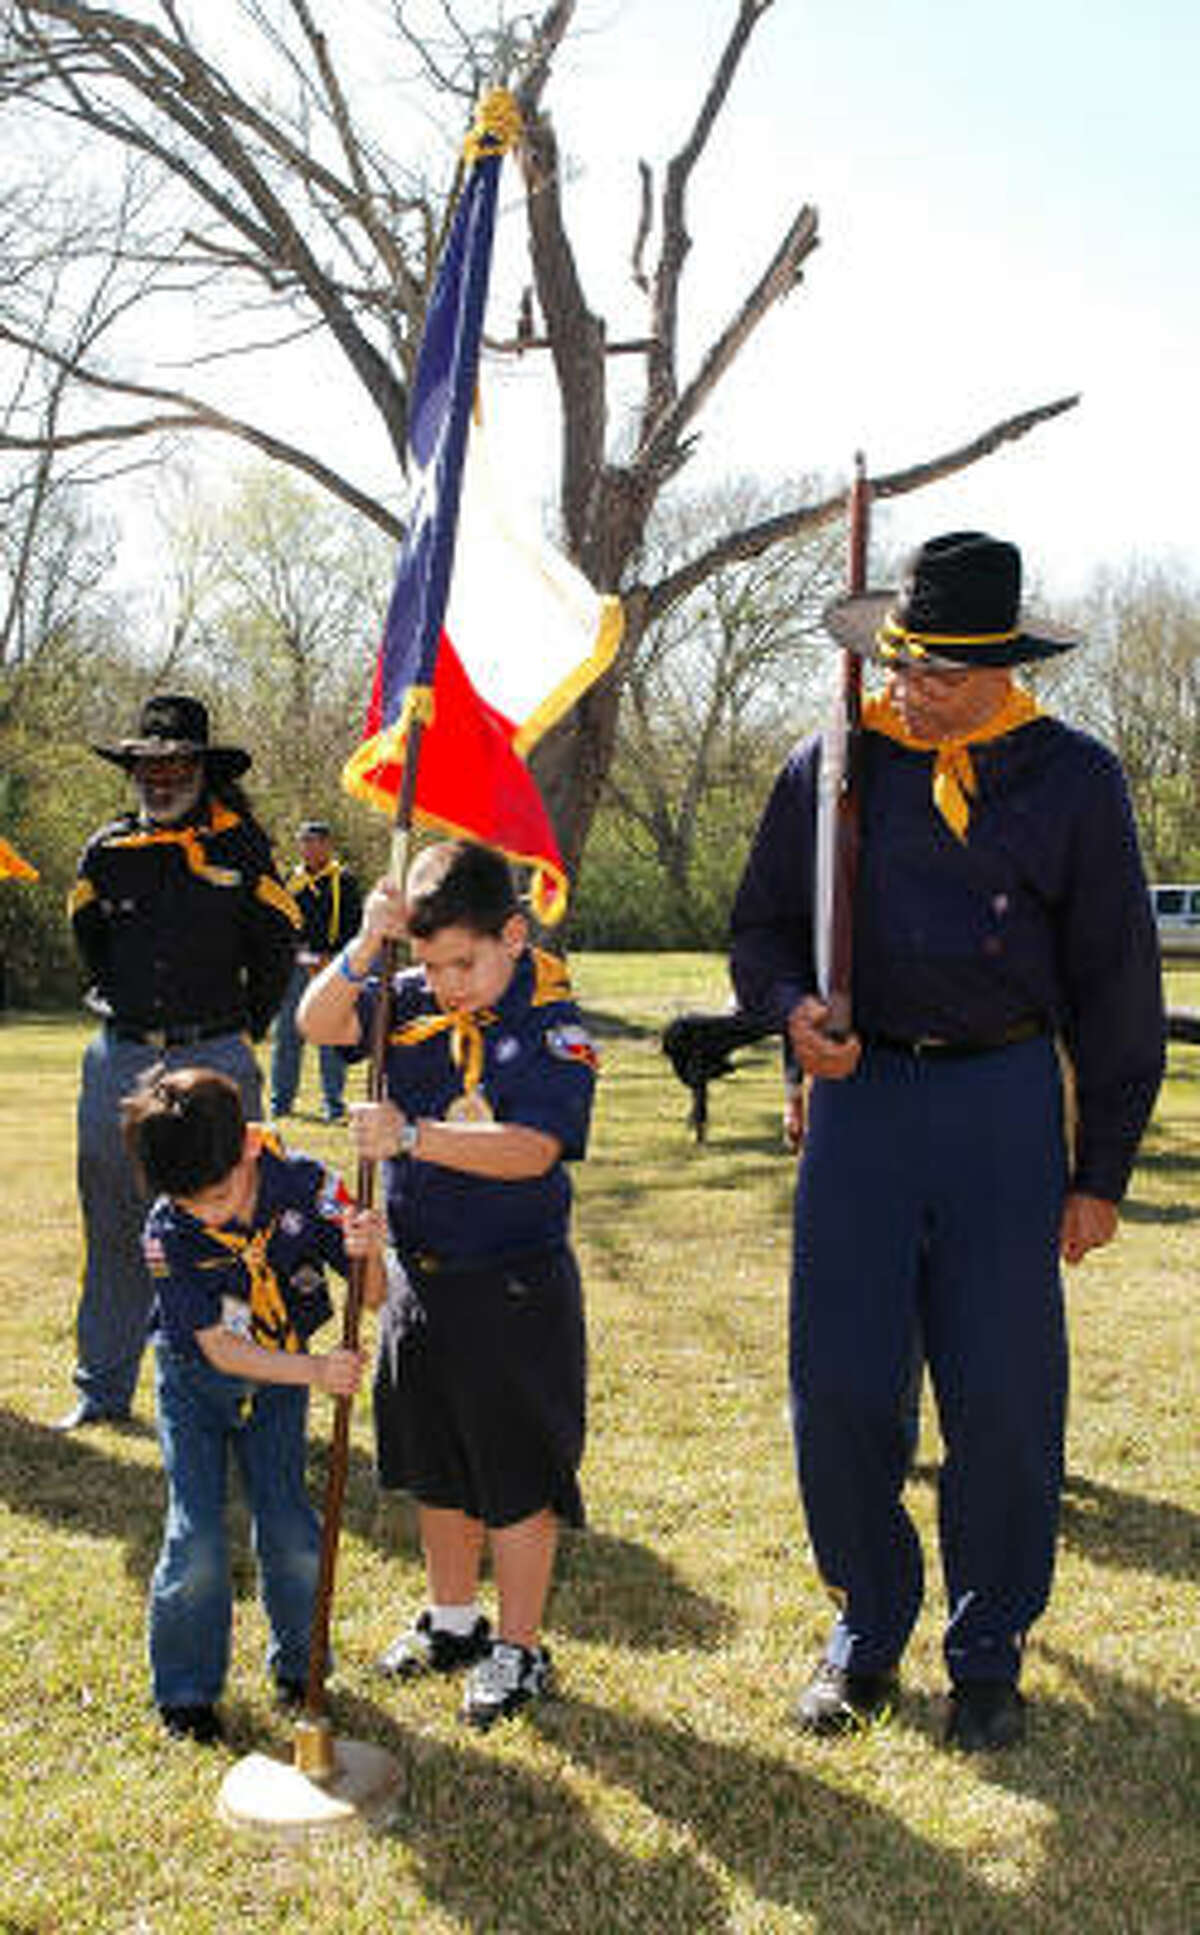 Buffalo Soldiers Trooper Cleveland Burrell, right, watches as Boy Scouts Julian Martinez, center, and Zyan Lopez of the Outley Elementary School Cub Scout Pack 1126 place the Texas flag during the historical marker ceremony at Prairie Grove Cemetery, 13685 Renn Road and Eldridge Parkway. It is one of the oldest black cemeteries in the area.